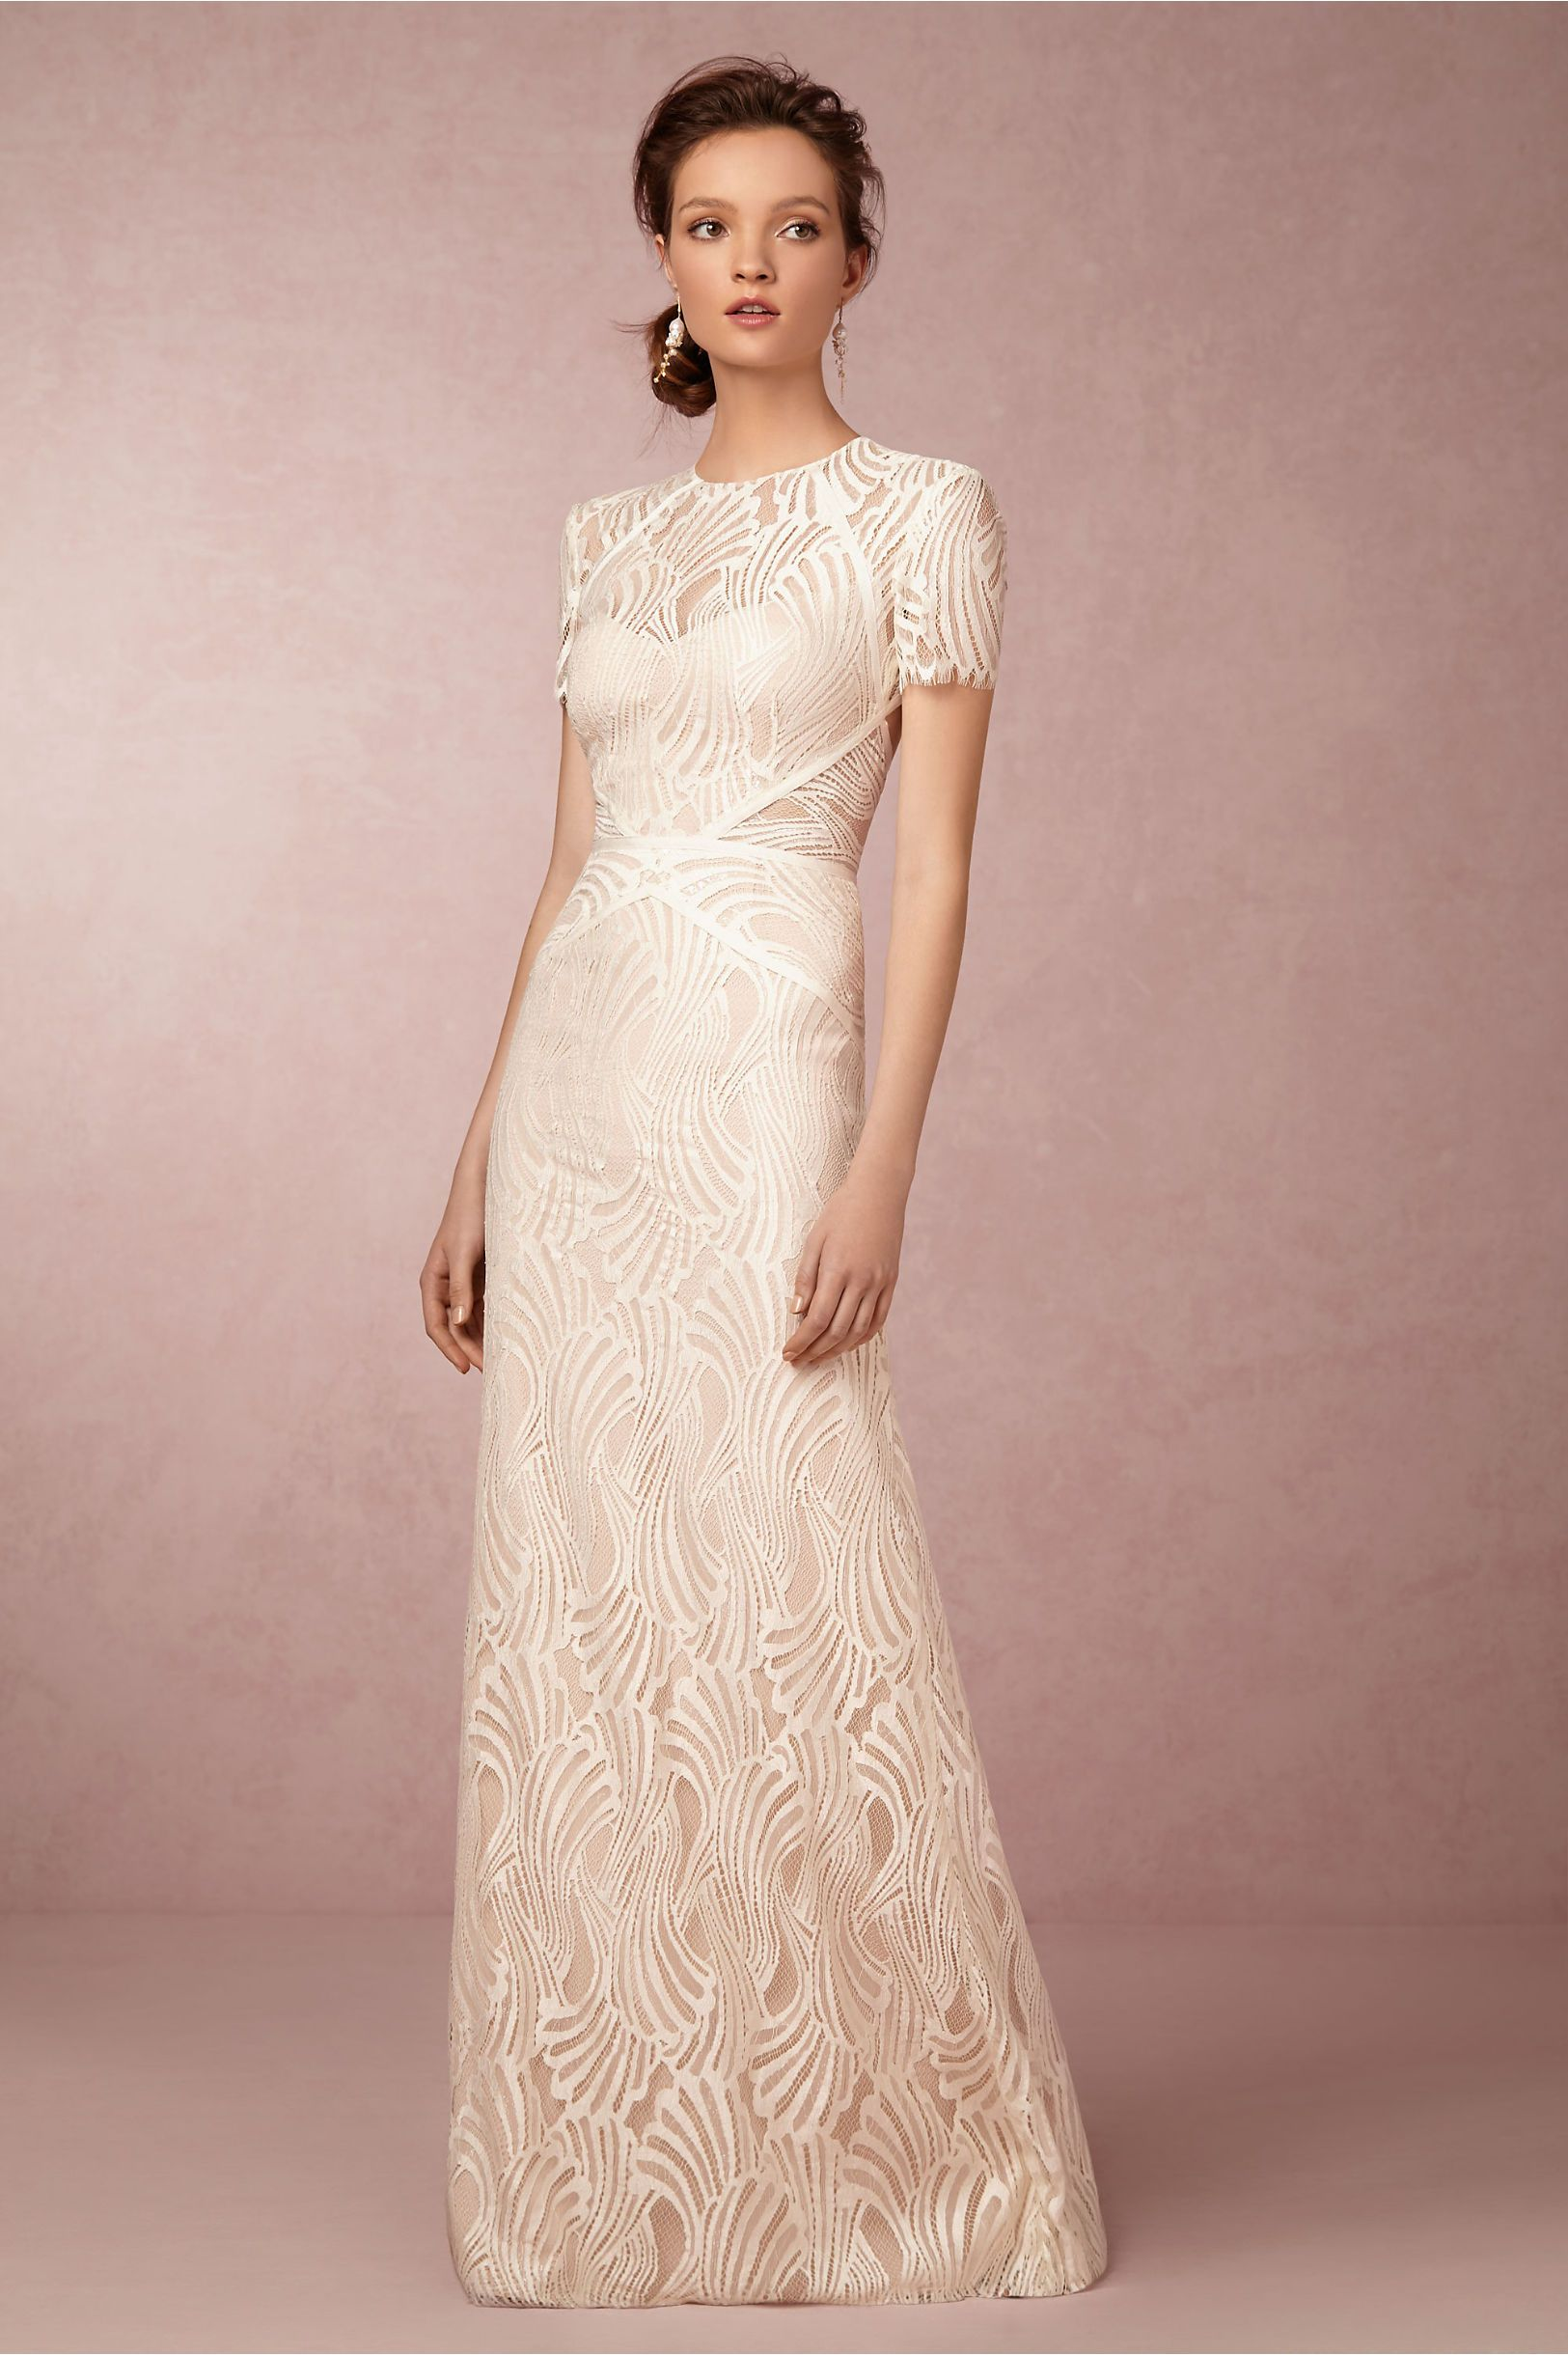 Beilin Gown in Bride Wedding Dresses at BHLDN | Simple Elegant ...